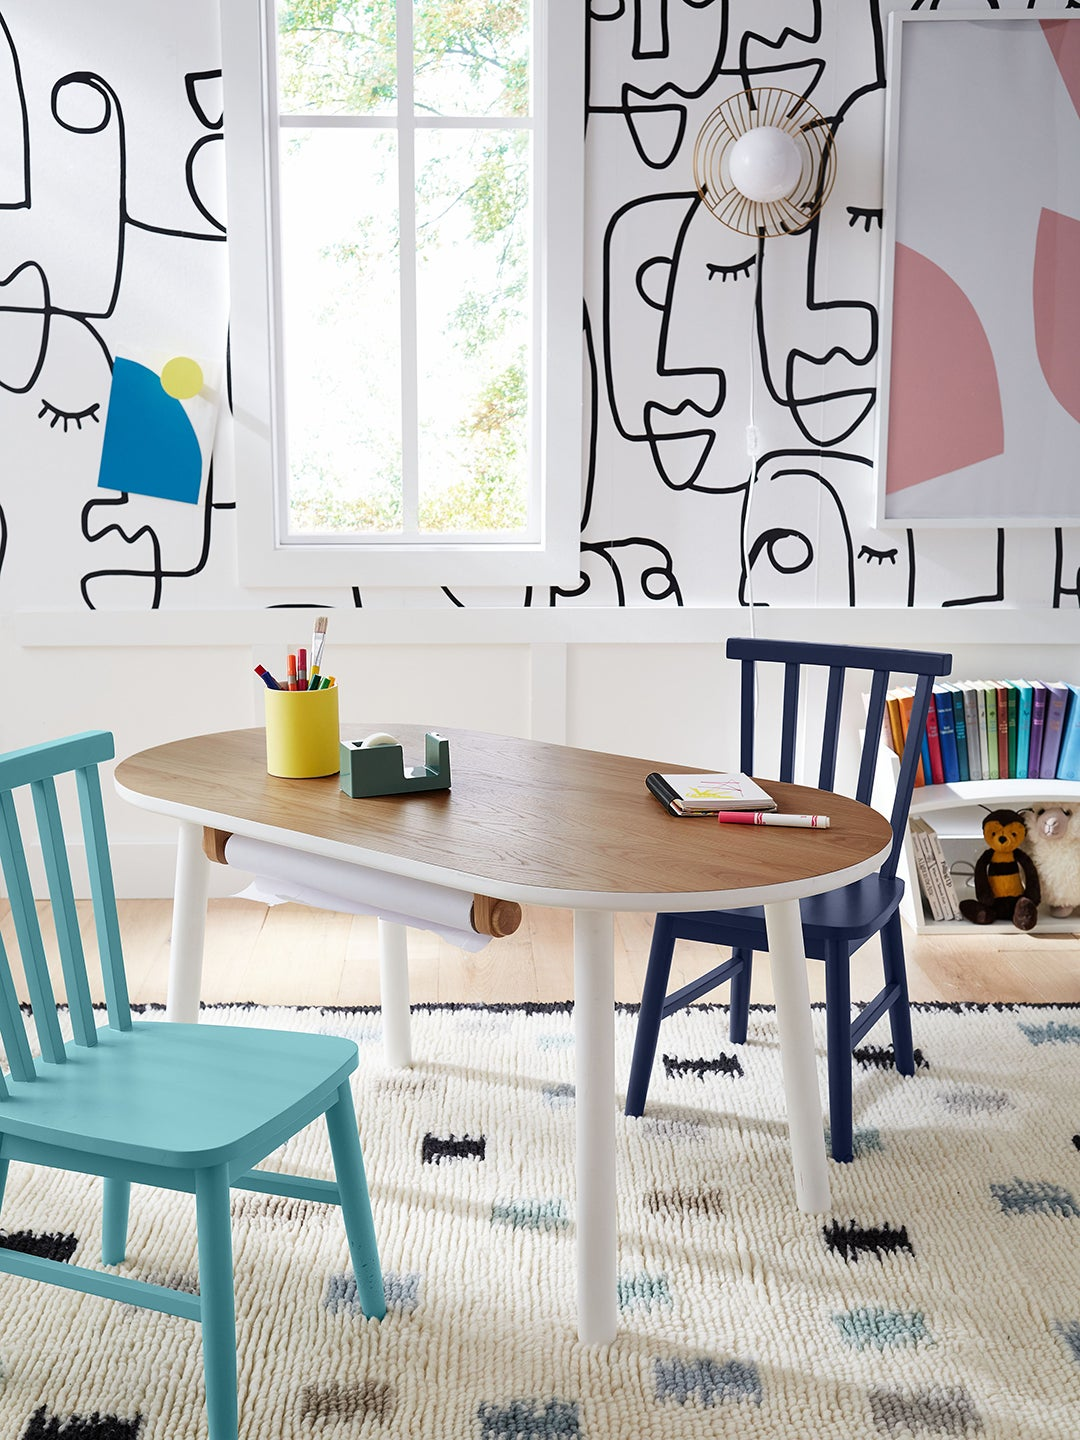 This Storage Piece Is the Star of Crate & Kids's New Back-to-School Collection